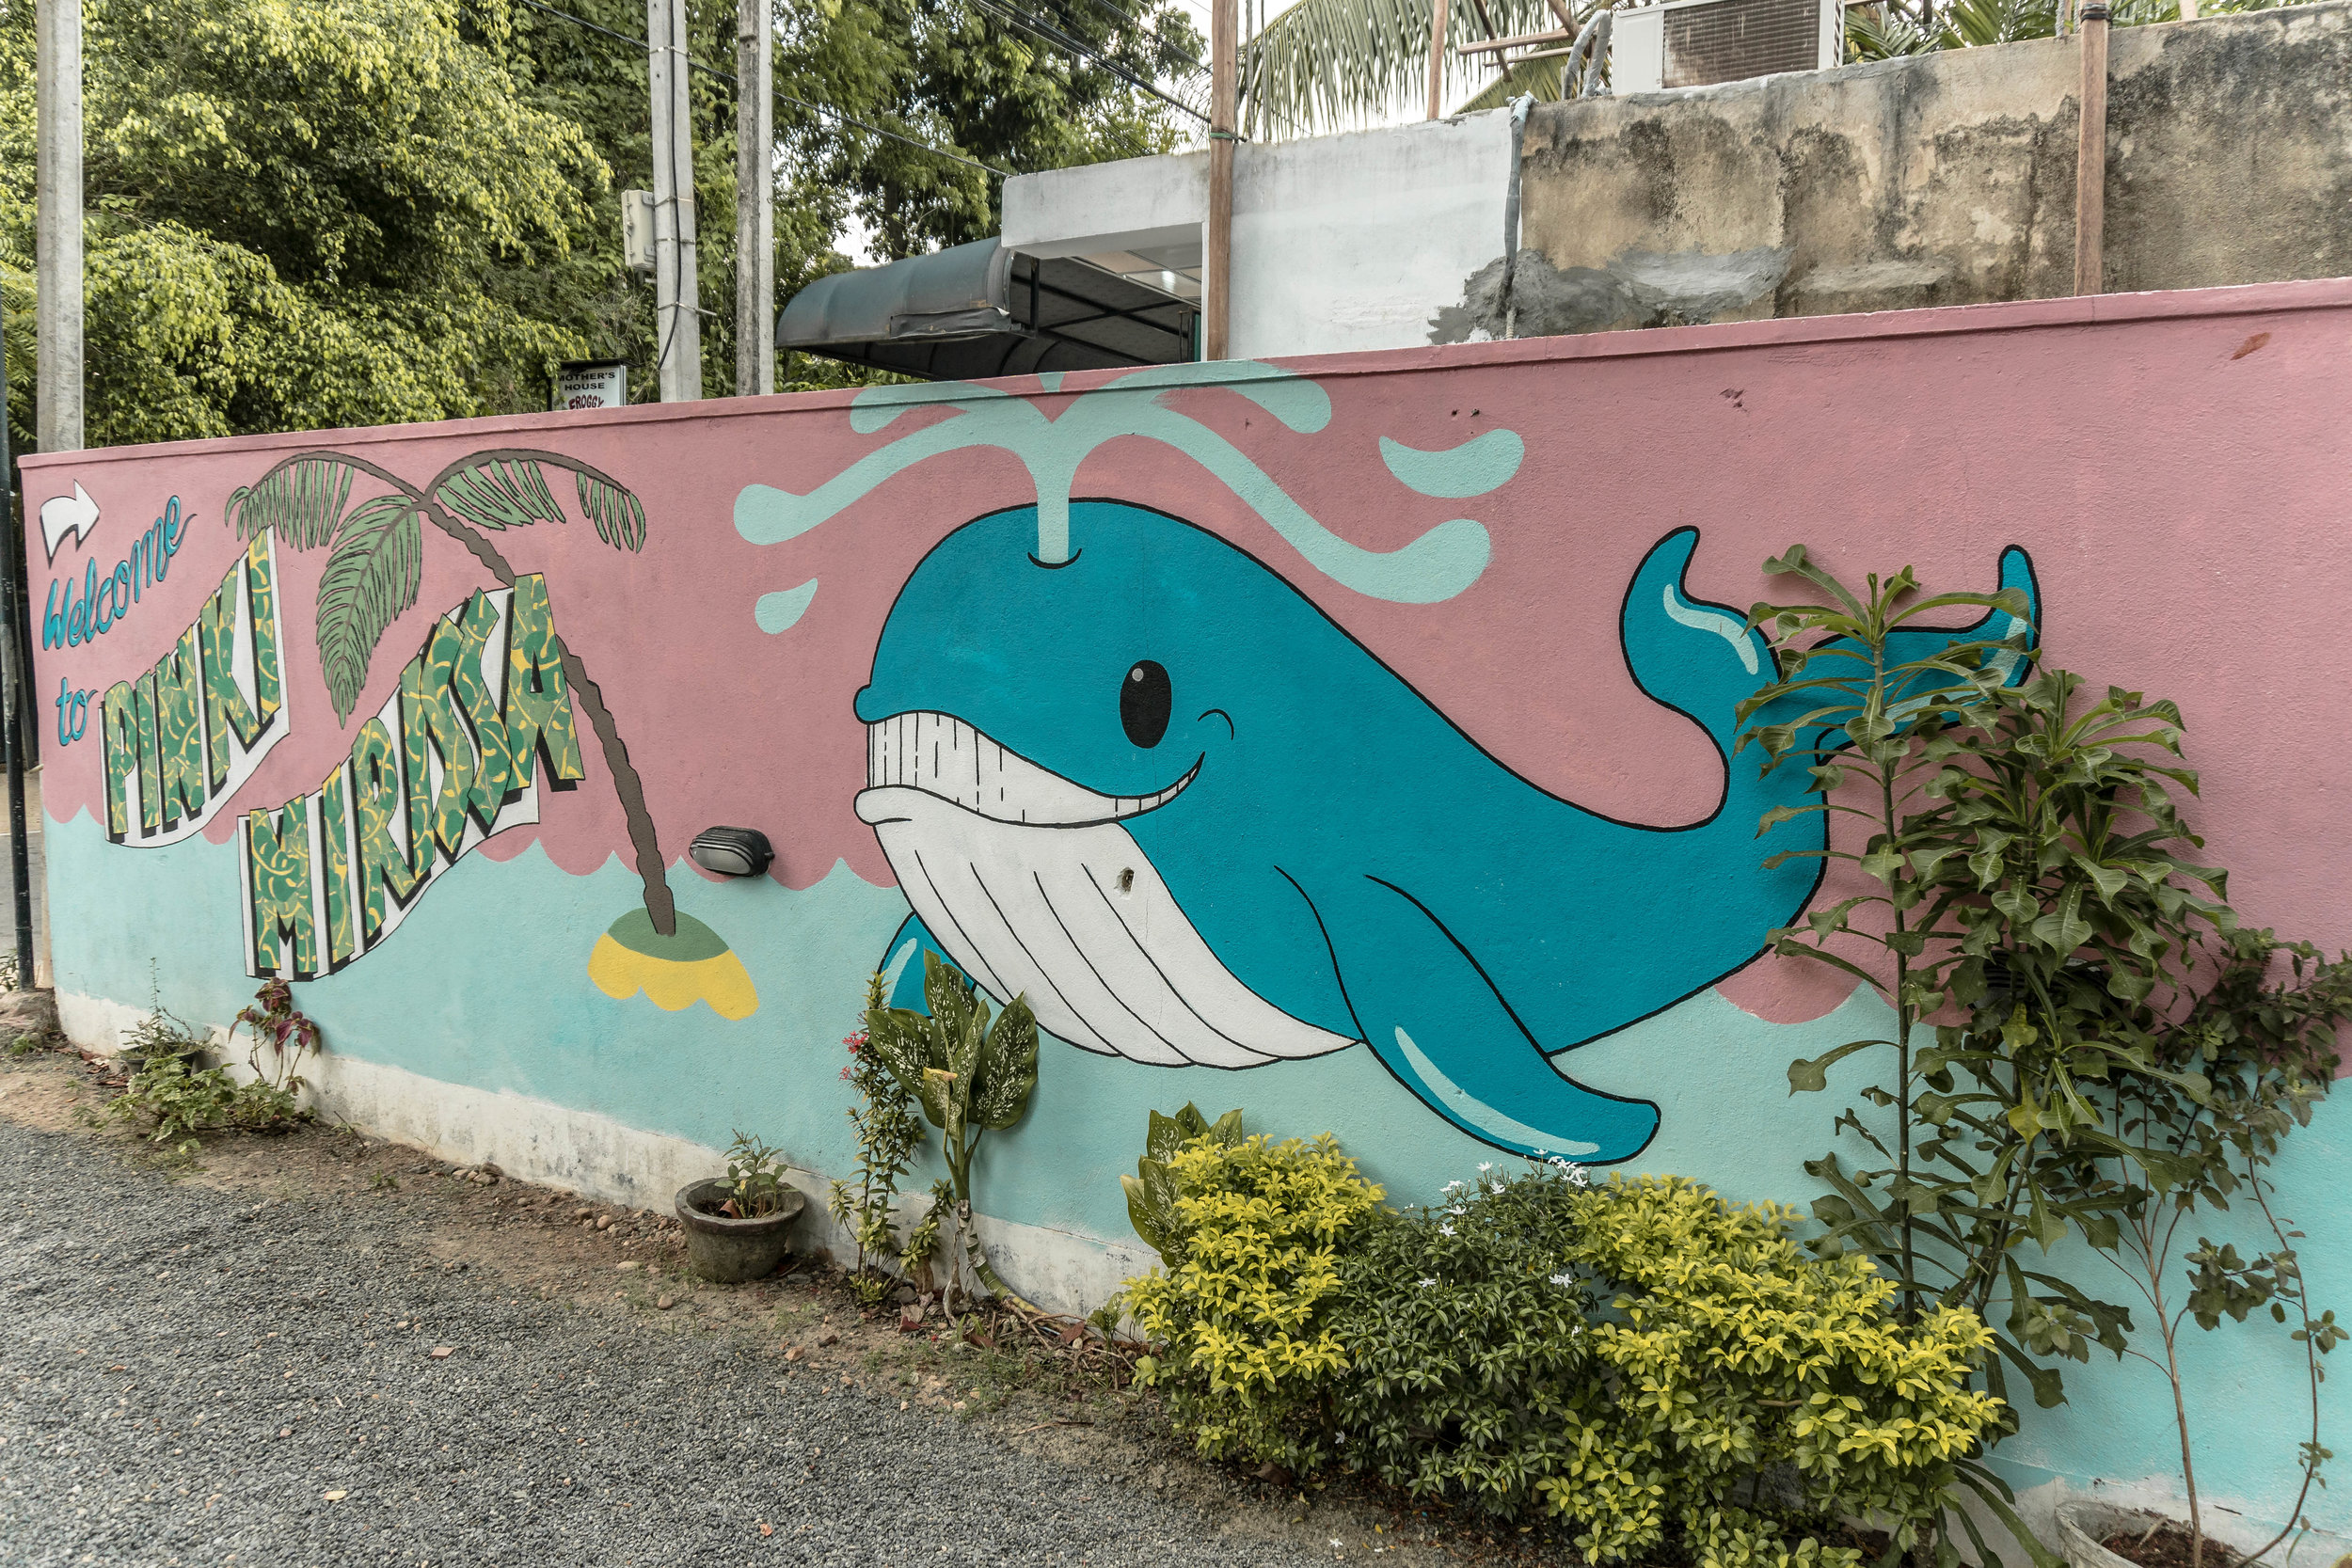 A STREET ART GUIDE TO MIRISSA, SRI LANKA: WHERE TO FIND THE COOLEST MURALS IN MIRISSA